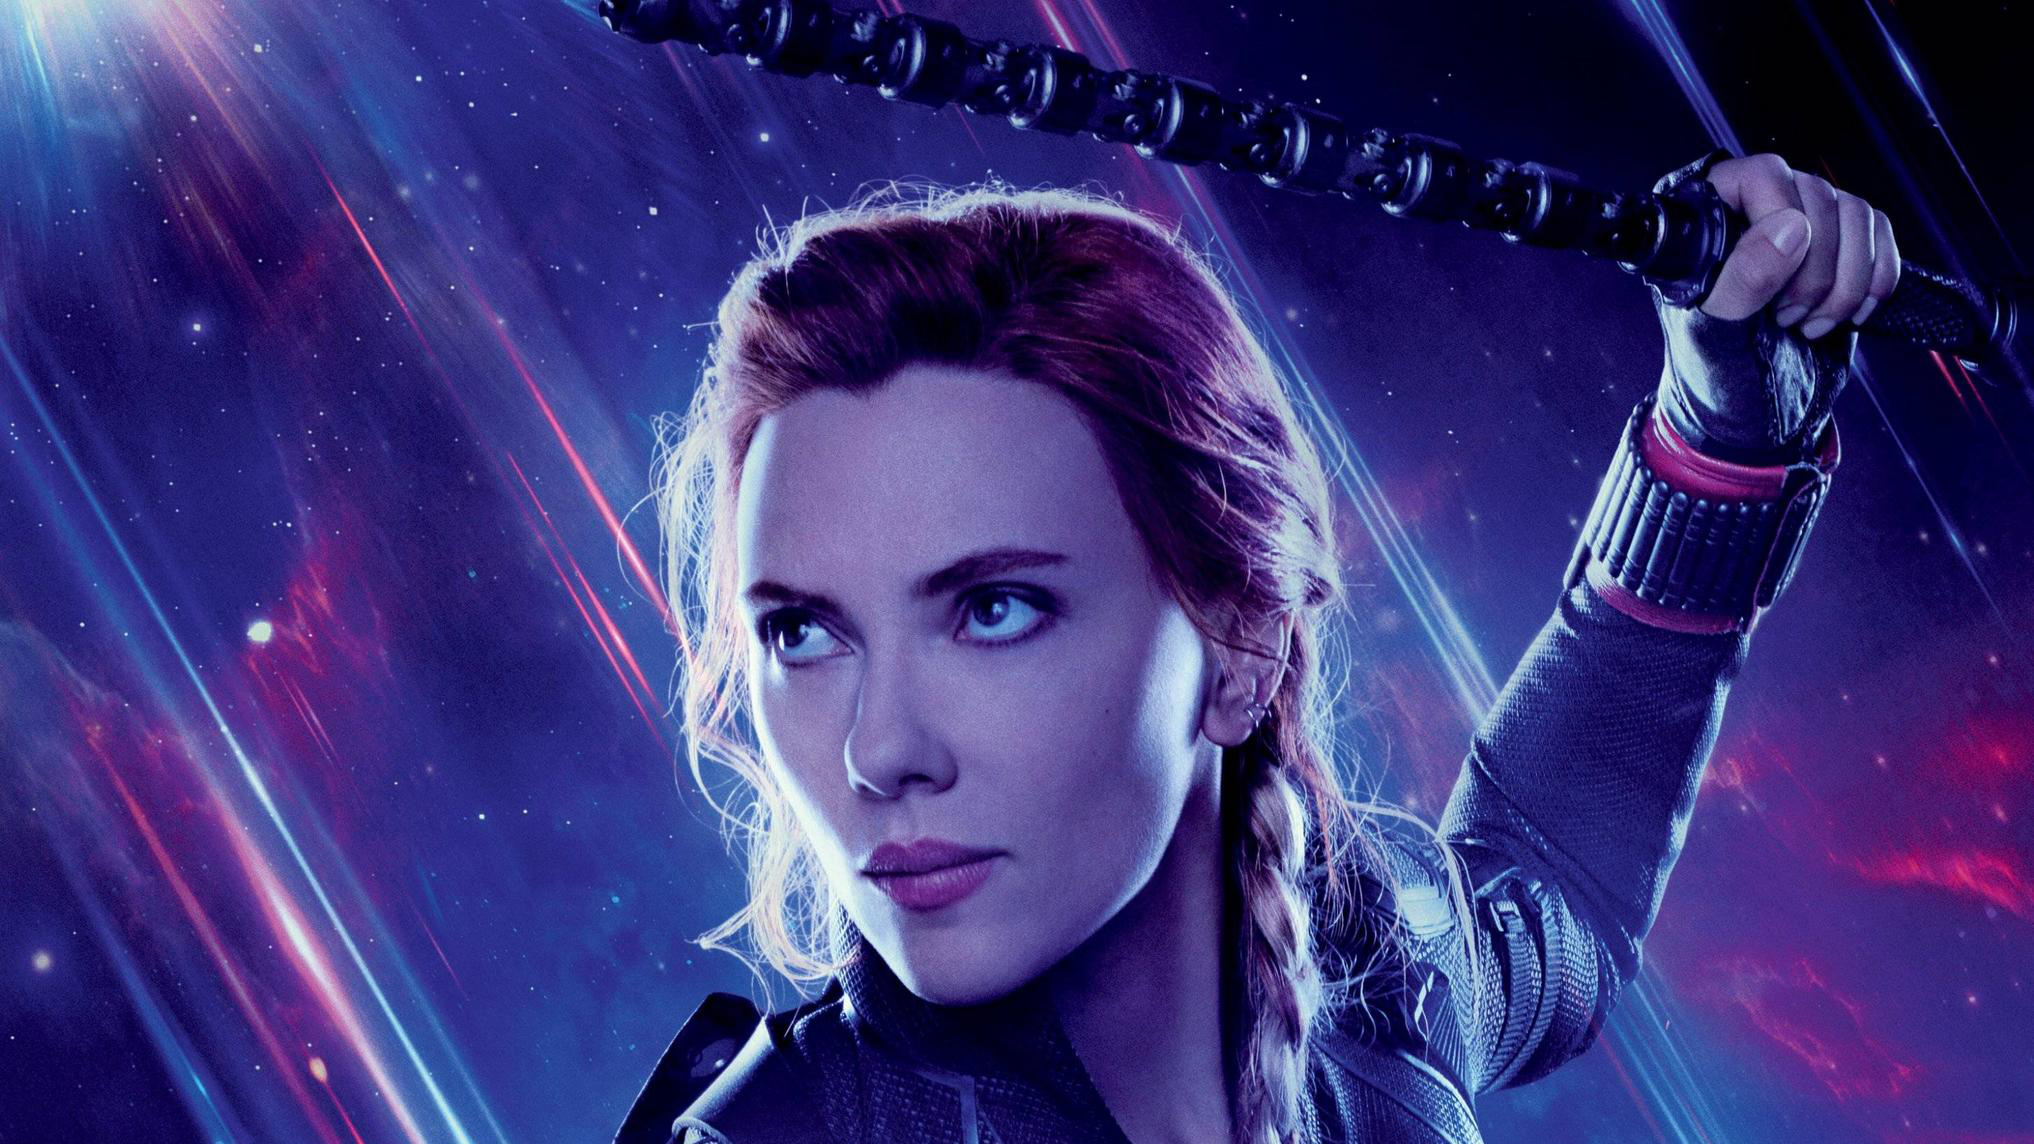 240x320 Black Widow In Avengers Endgame Nokia 230 Nokia 215 Samsung Xcover 550 Lg G350 Android Hd 4k Wallpapers Images Backgrounds Photos And Pictures